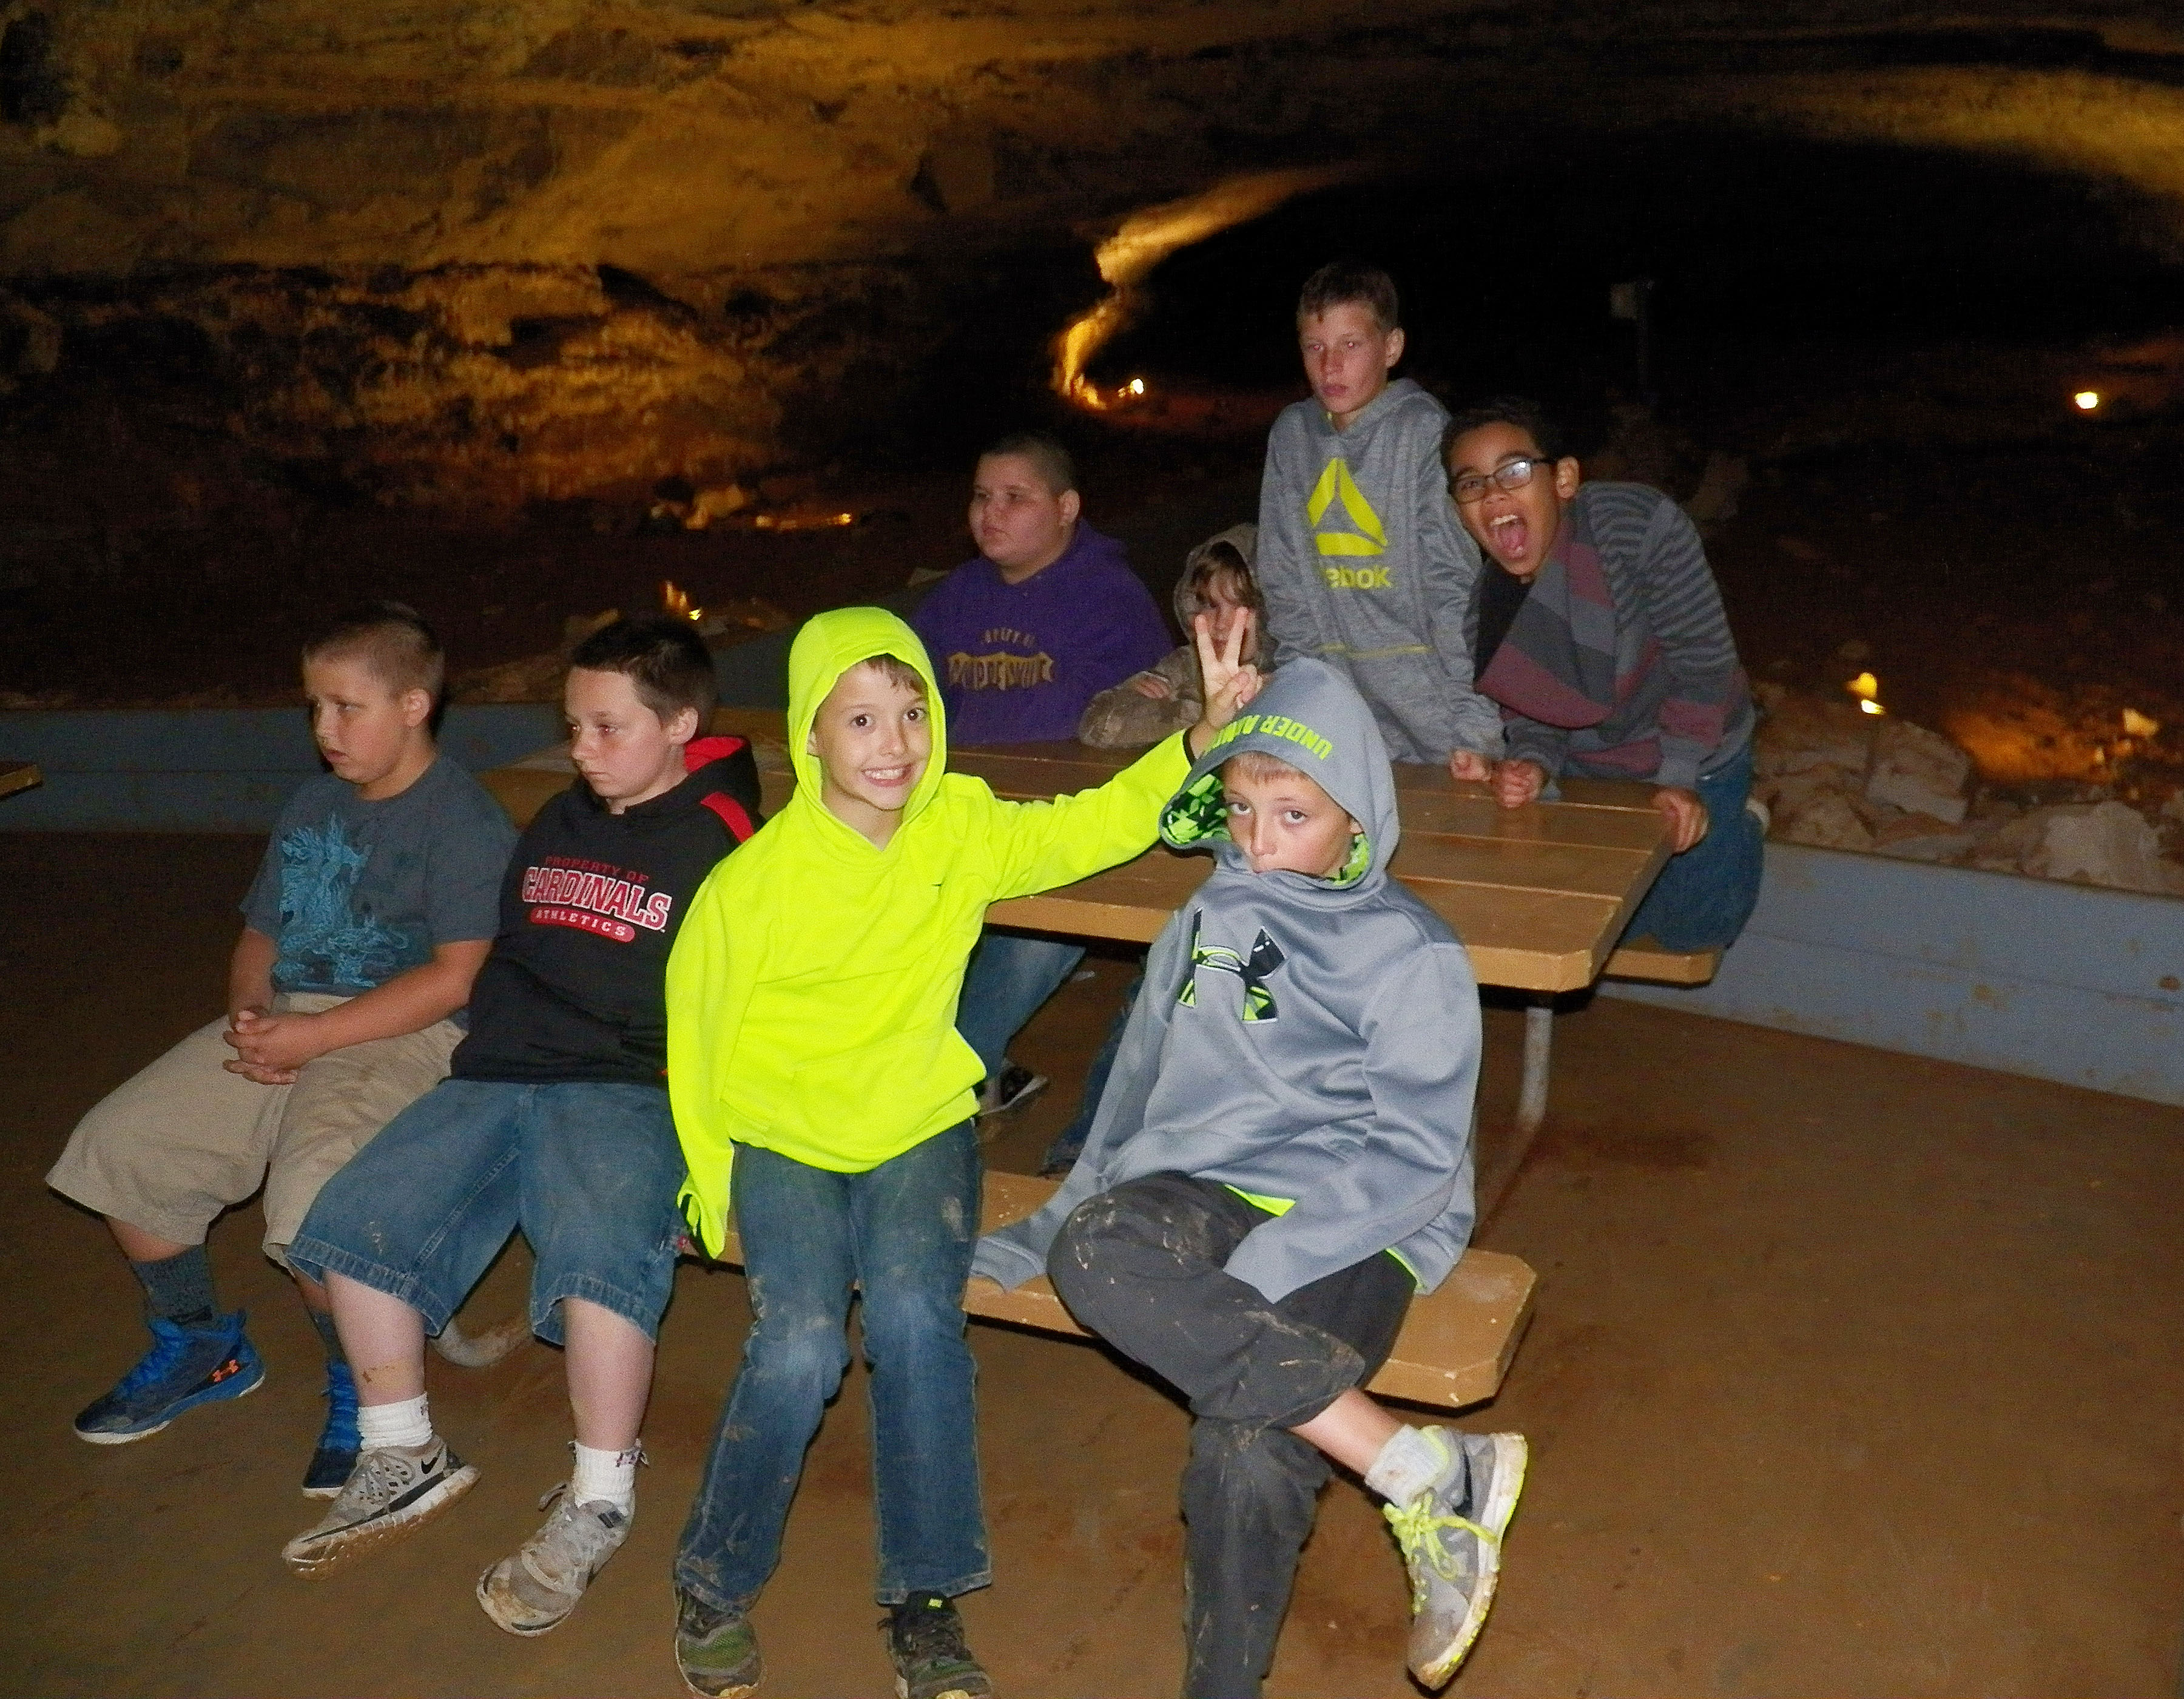 CMS fourth-graders learn about Mammoth Cave. From left, front, are Jacob Simpson, Chris Cox, Noah Skaggs and Jaxon Garrett. Standing in back are Rowan Petett, at left, and Gabriel Noyola.